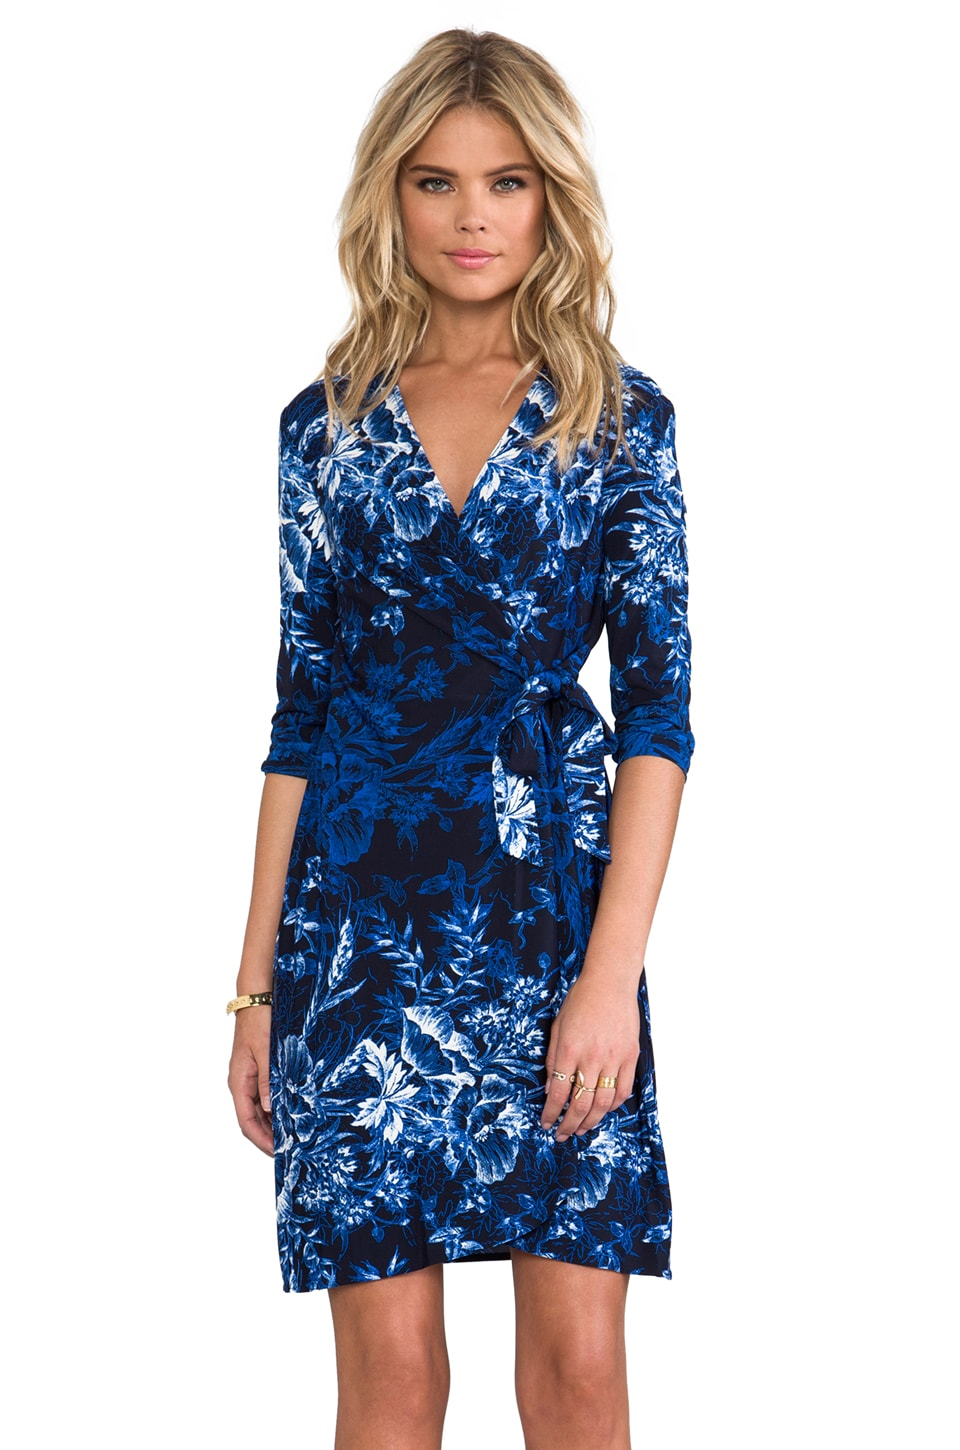 BCBGMAXAZRIA Adele Wrap Dress Combo in Orient Blue